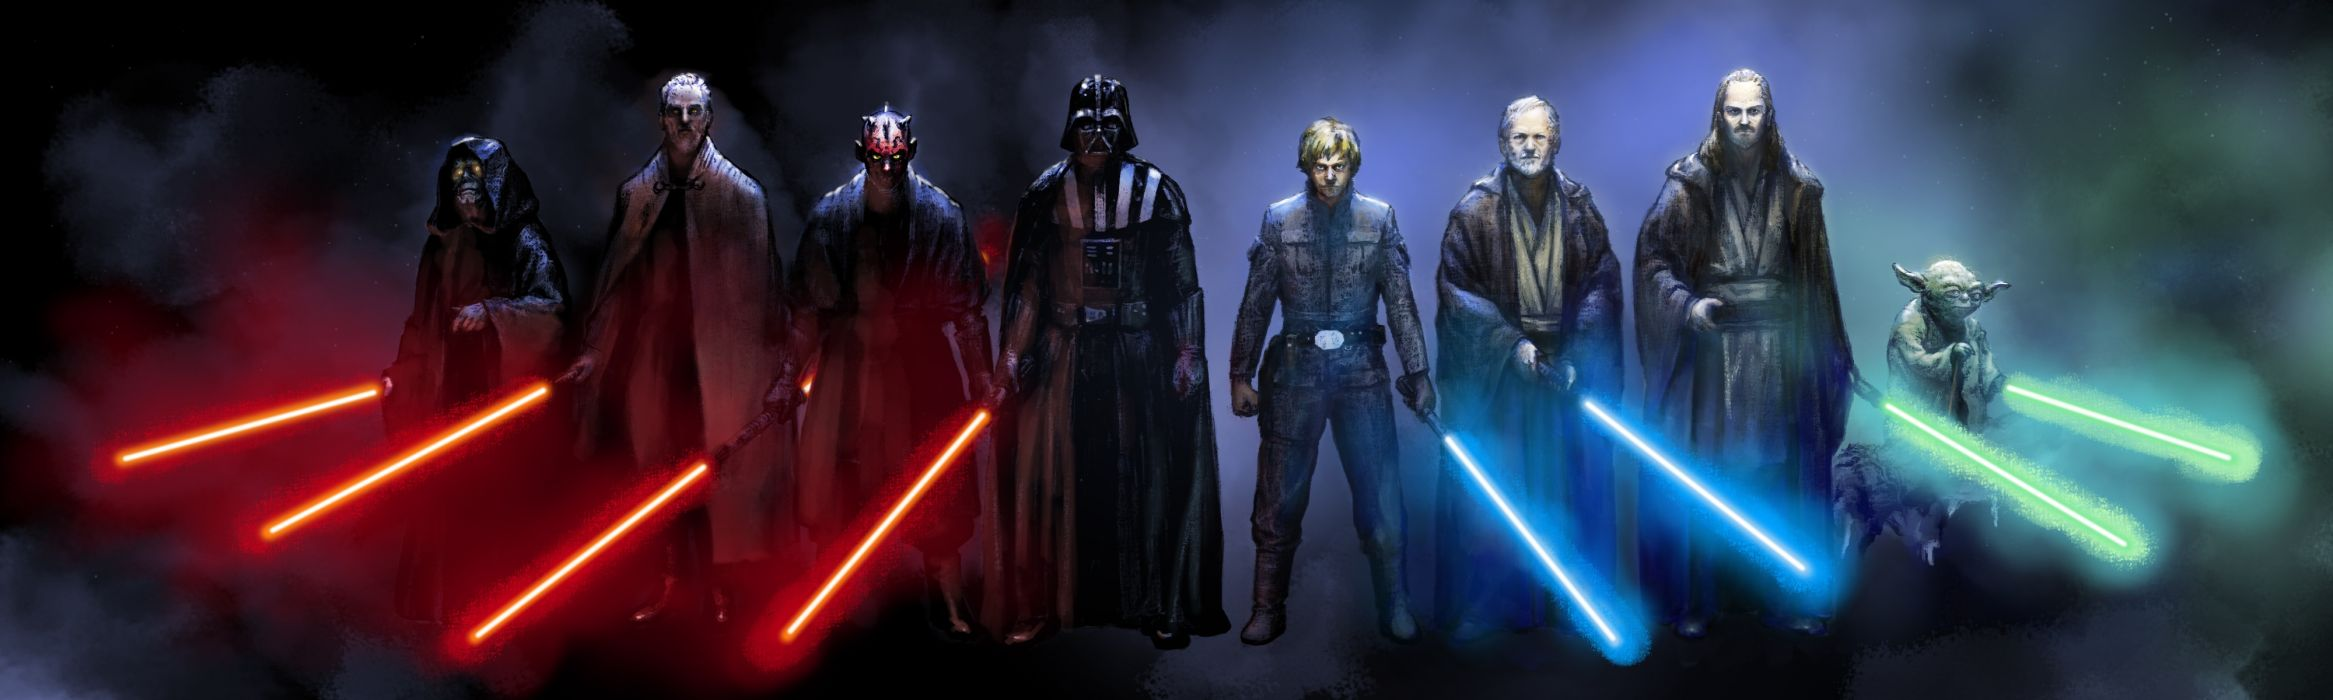 Star-Wars sci-fi science-fiction jedi lightsabers weapons entertainment movies games video-games wallpaper